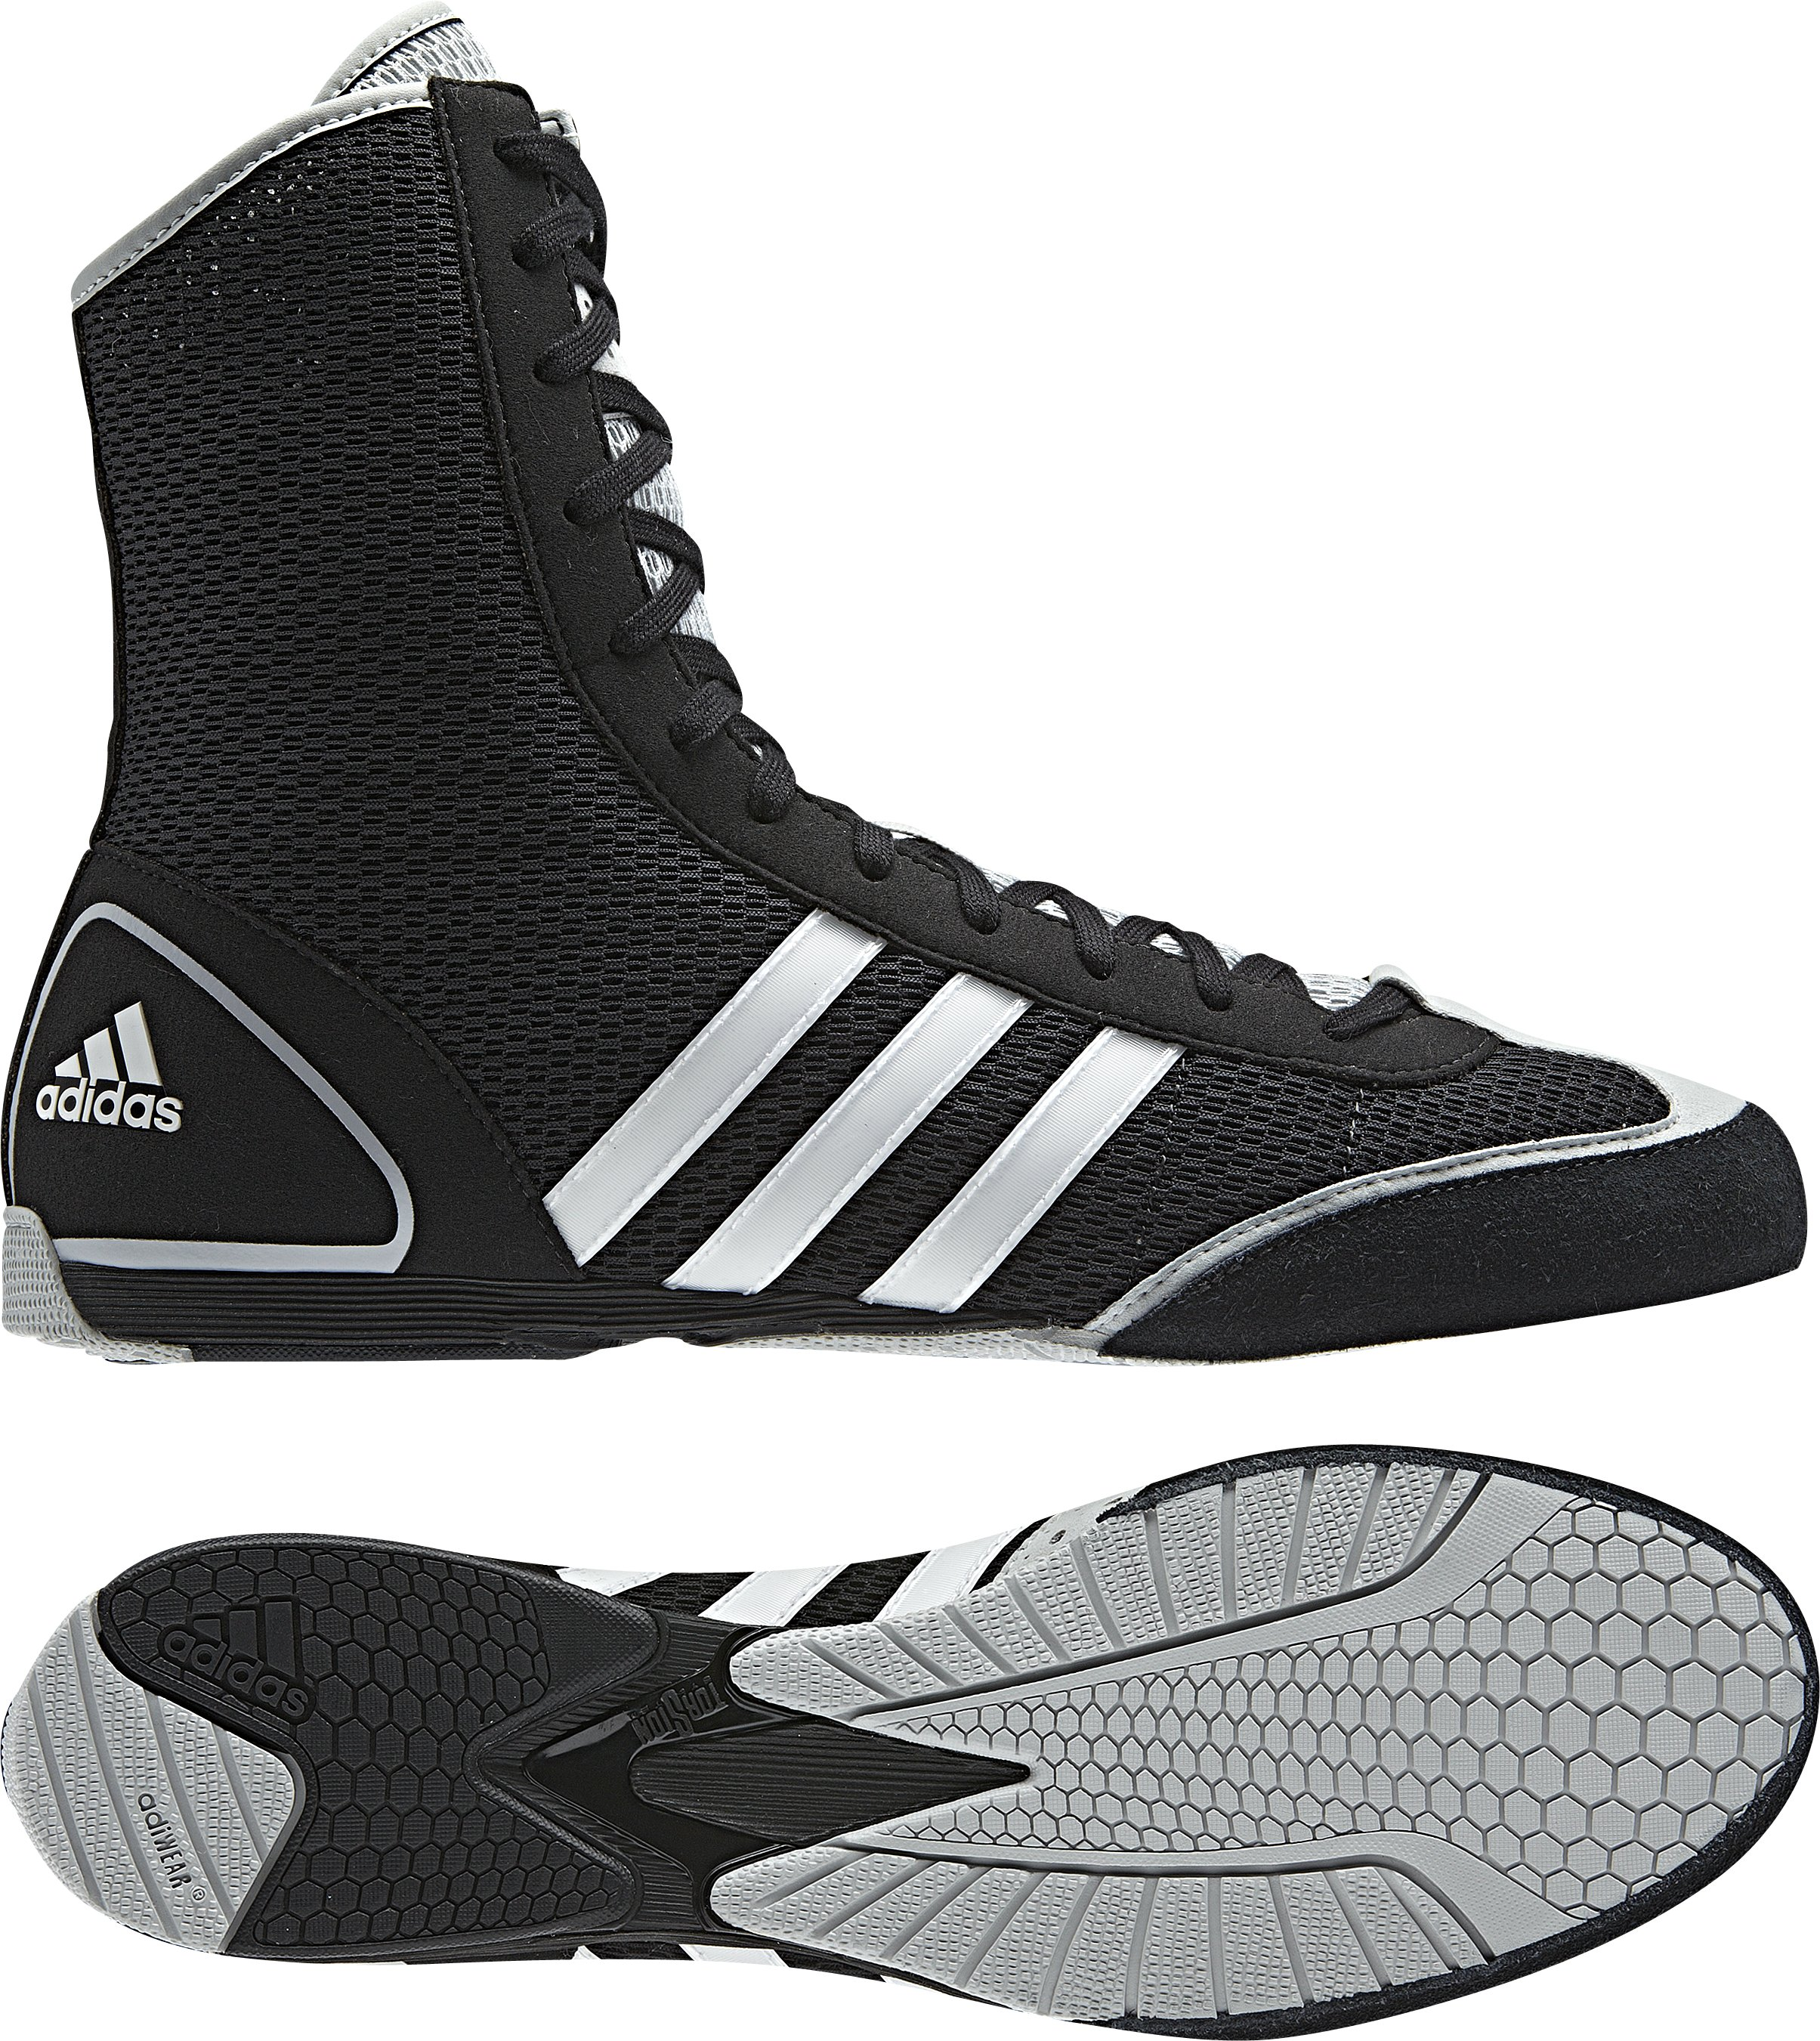 Old Adidas Wrestling Shoes